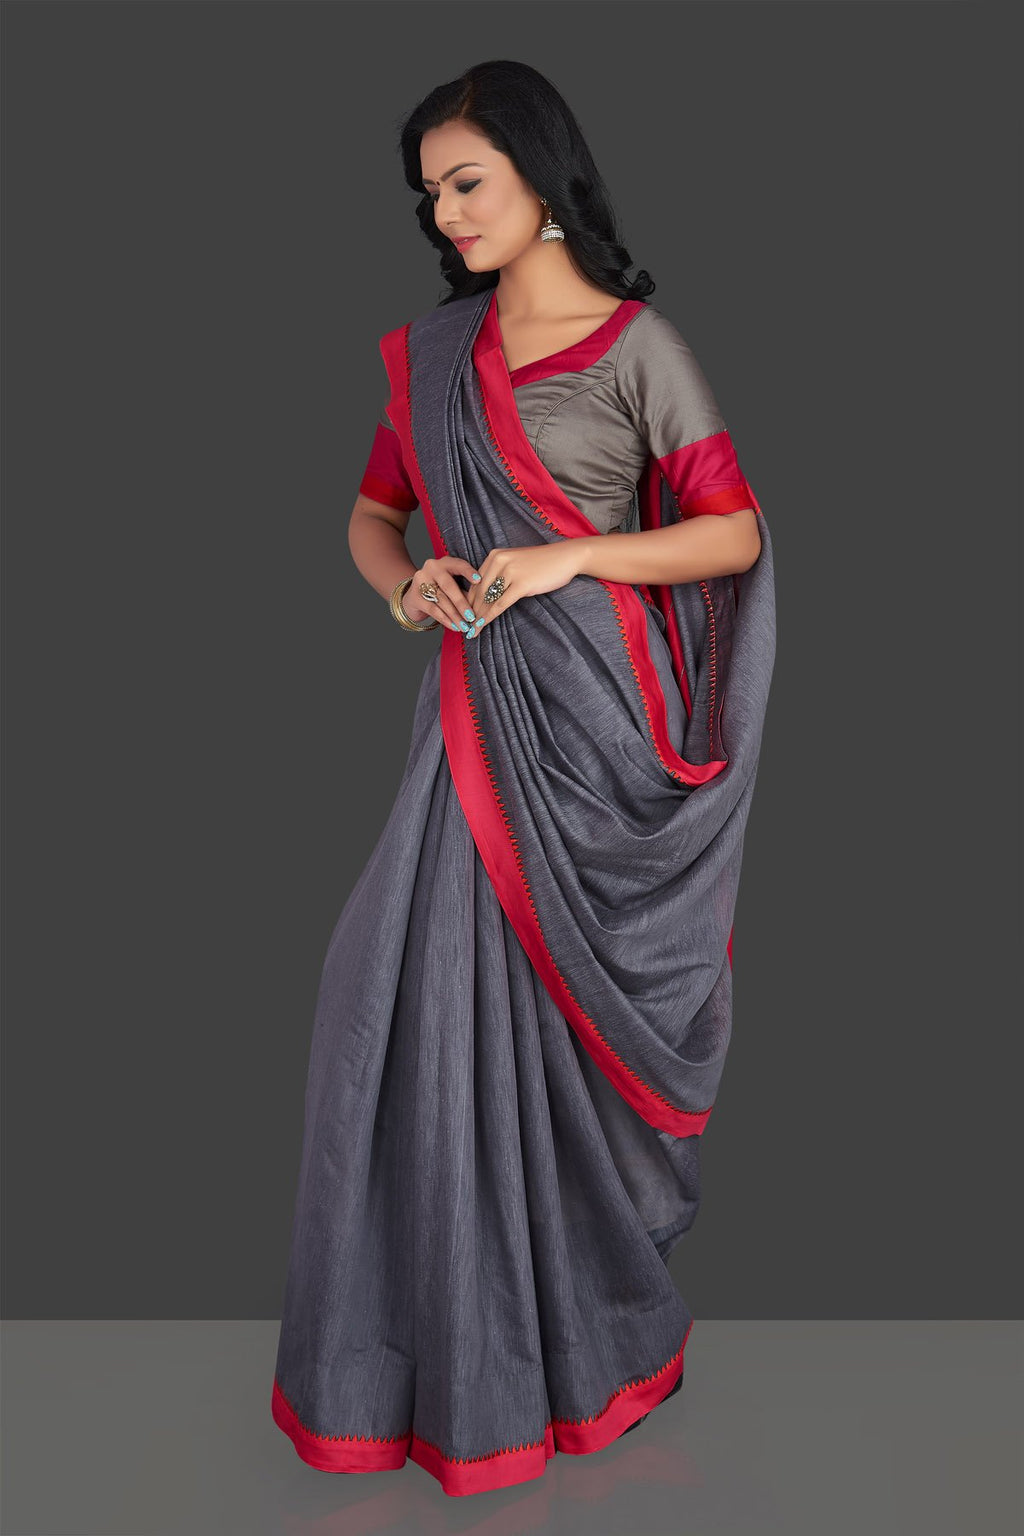 Shop elegant grey linen saree online in USA with pink border and saree blouse. Radiate elegance with designer sarees with blouse, linen sarees from Pure Elegance Indian fashion boutique in USA. We bring a especially curated collection of ethnic saris for Indian women in USA under one roof!-full view